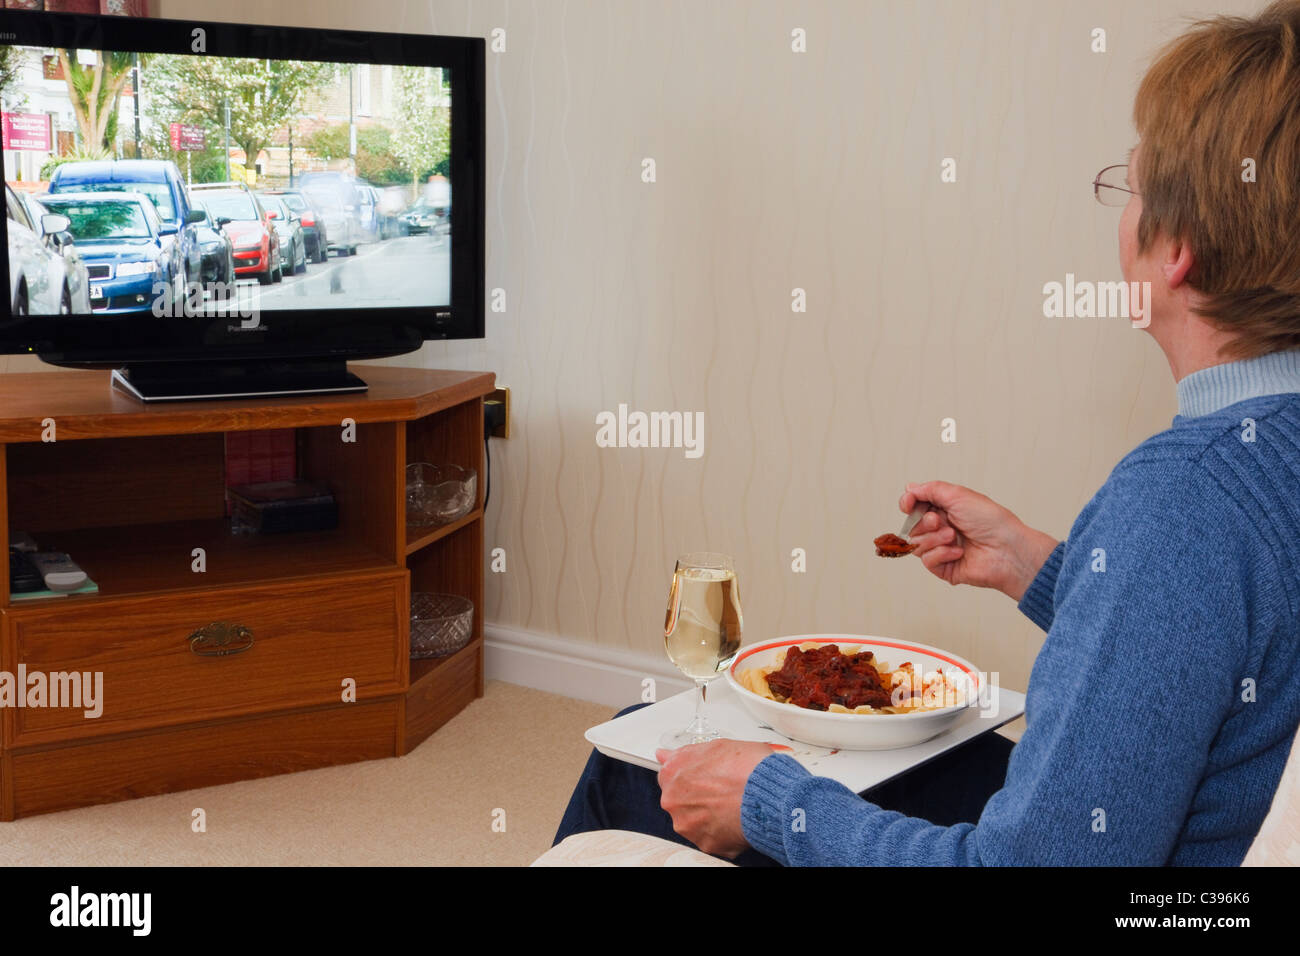 Everyday scene of a mature woman sitting alone in front of a television eating an evening TV meal with glass of - Stock Image